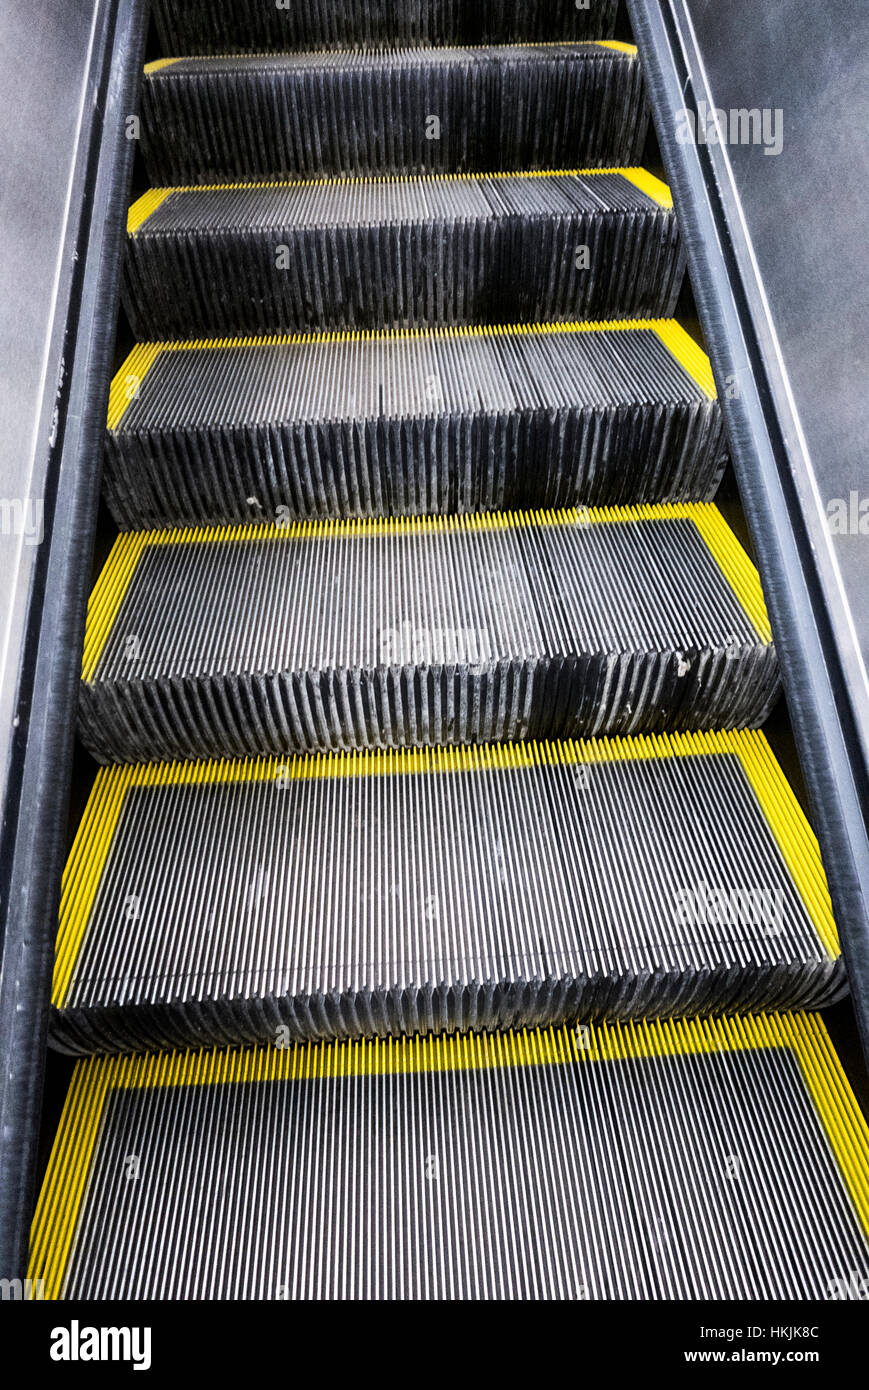 Detail of escalator stairs. - Stock Image